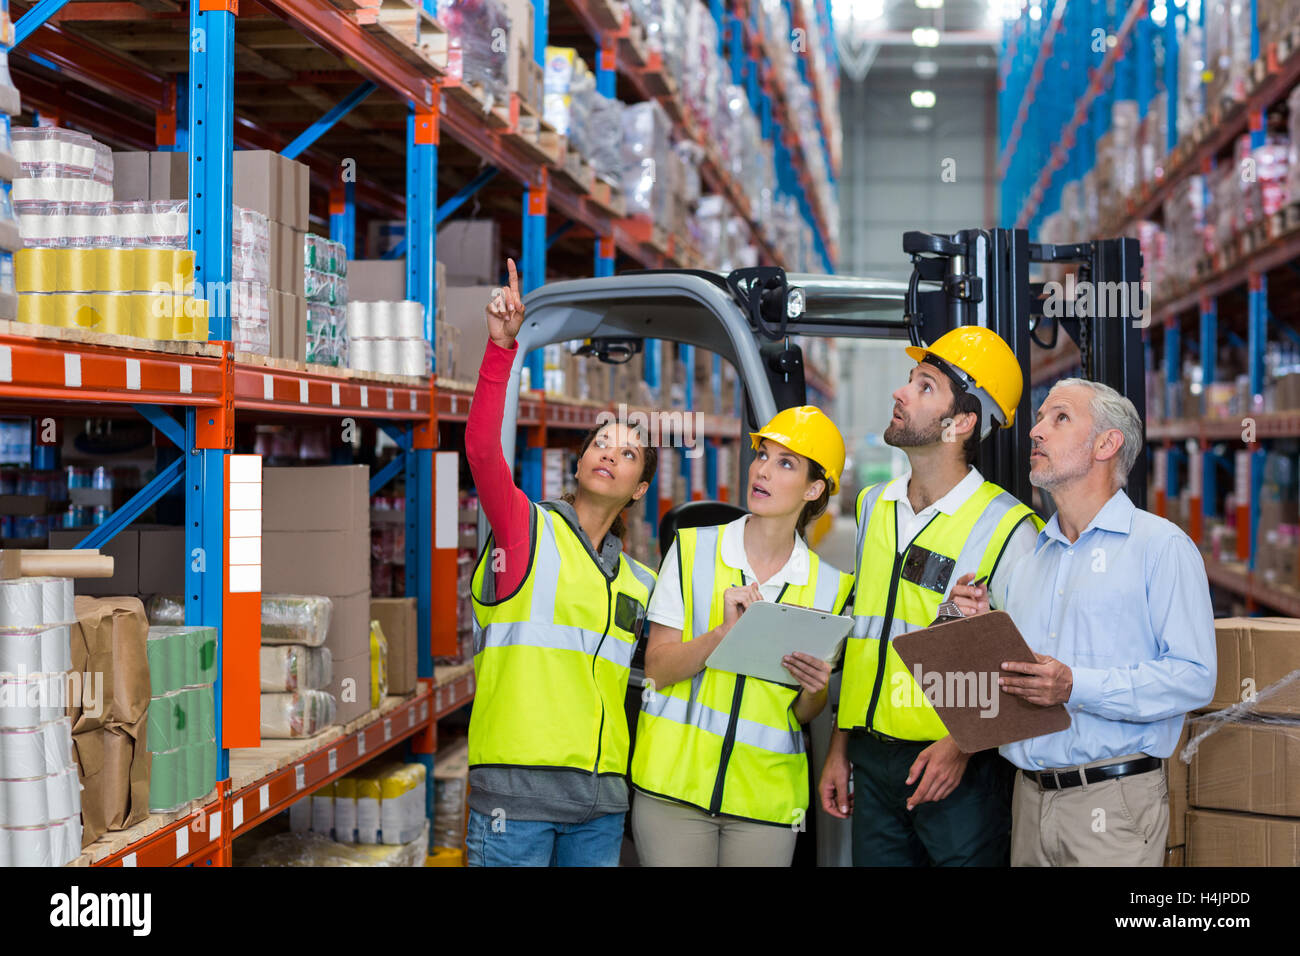 Warehouse manager and co-workers discussing over clipboard - Stock Image